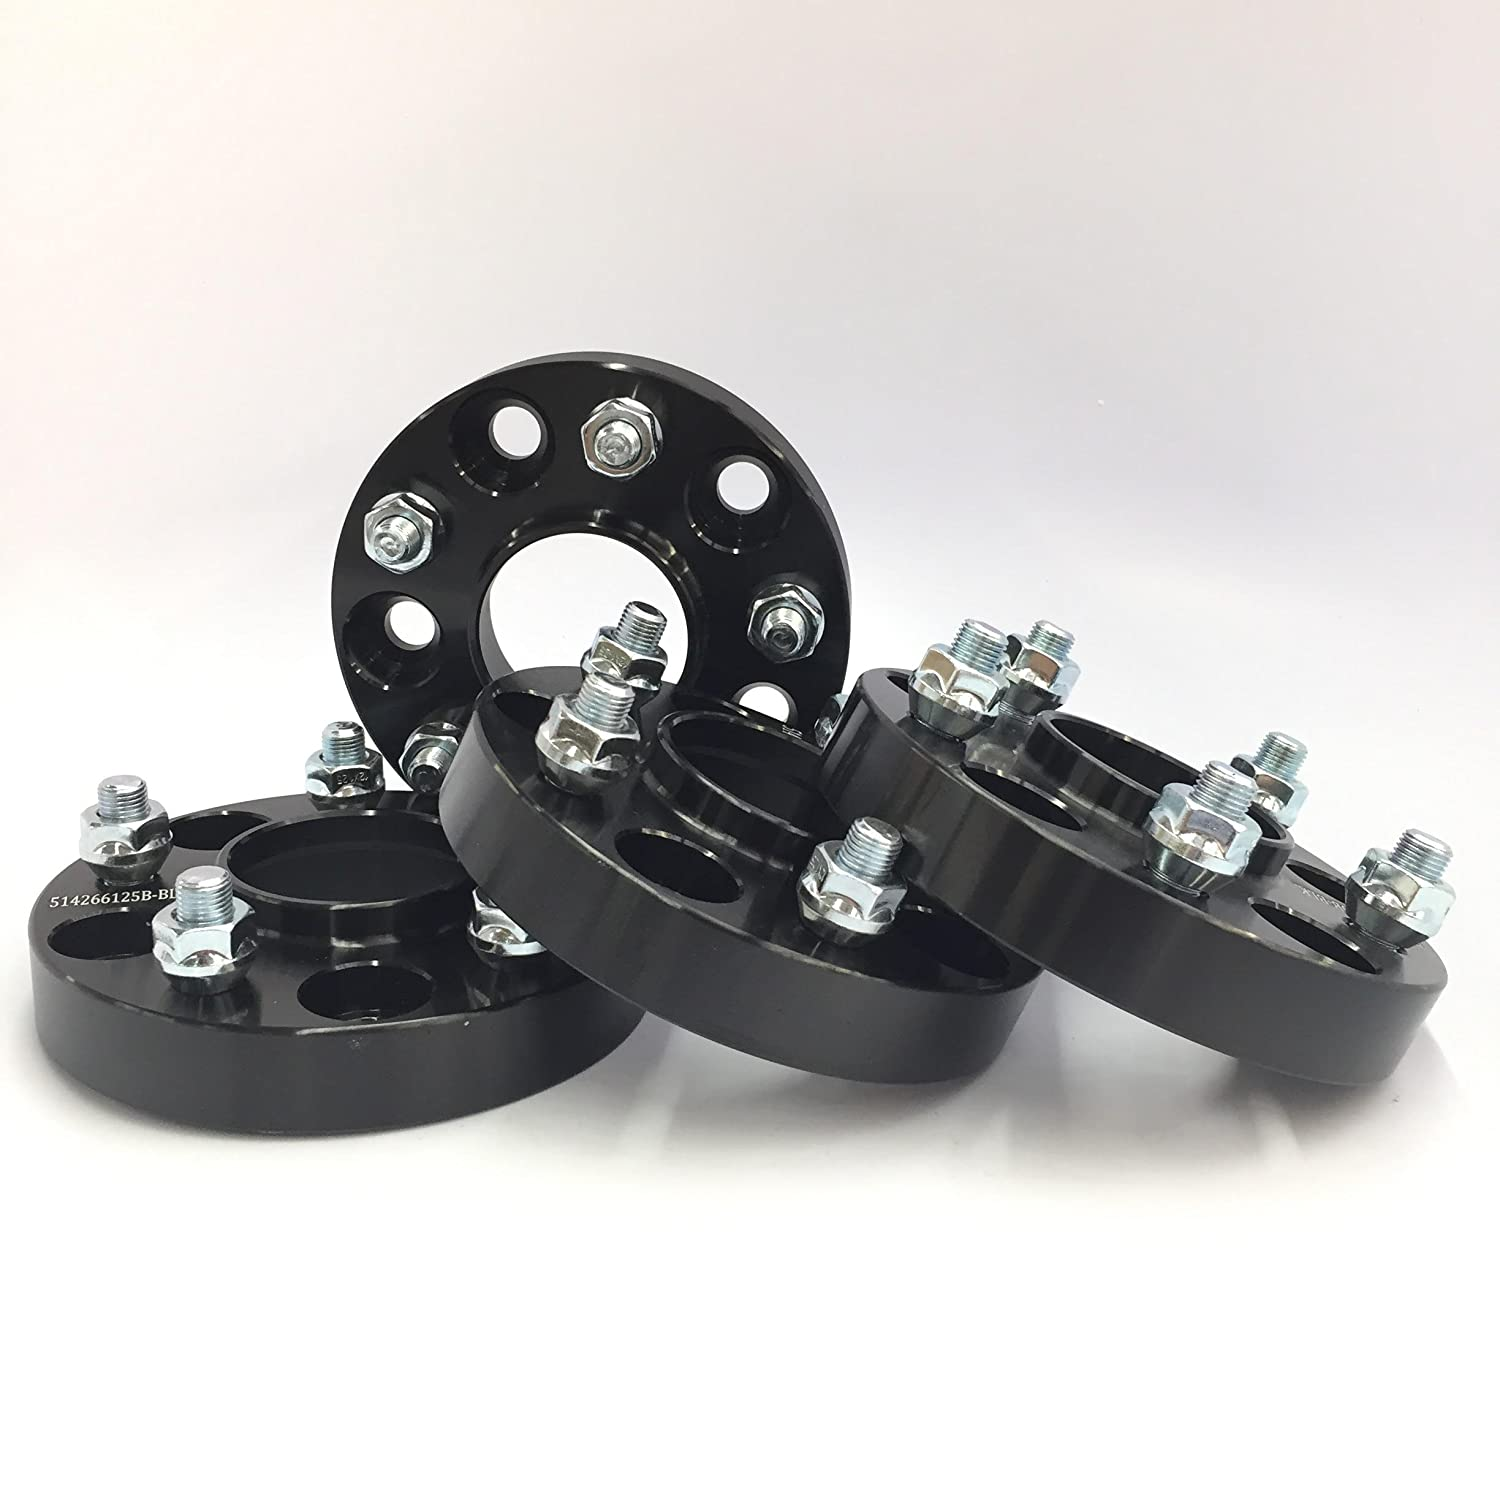 Customadeonly 4 Pieces 1 25mm Hub Centric Black Wheel Spacers Bolt Pattern 5x114.3 5x4.5 12x1.25 Center Bore 56.1mm Thread Pitch 12x1.25 Fits STI